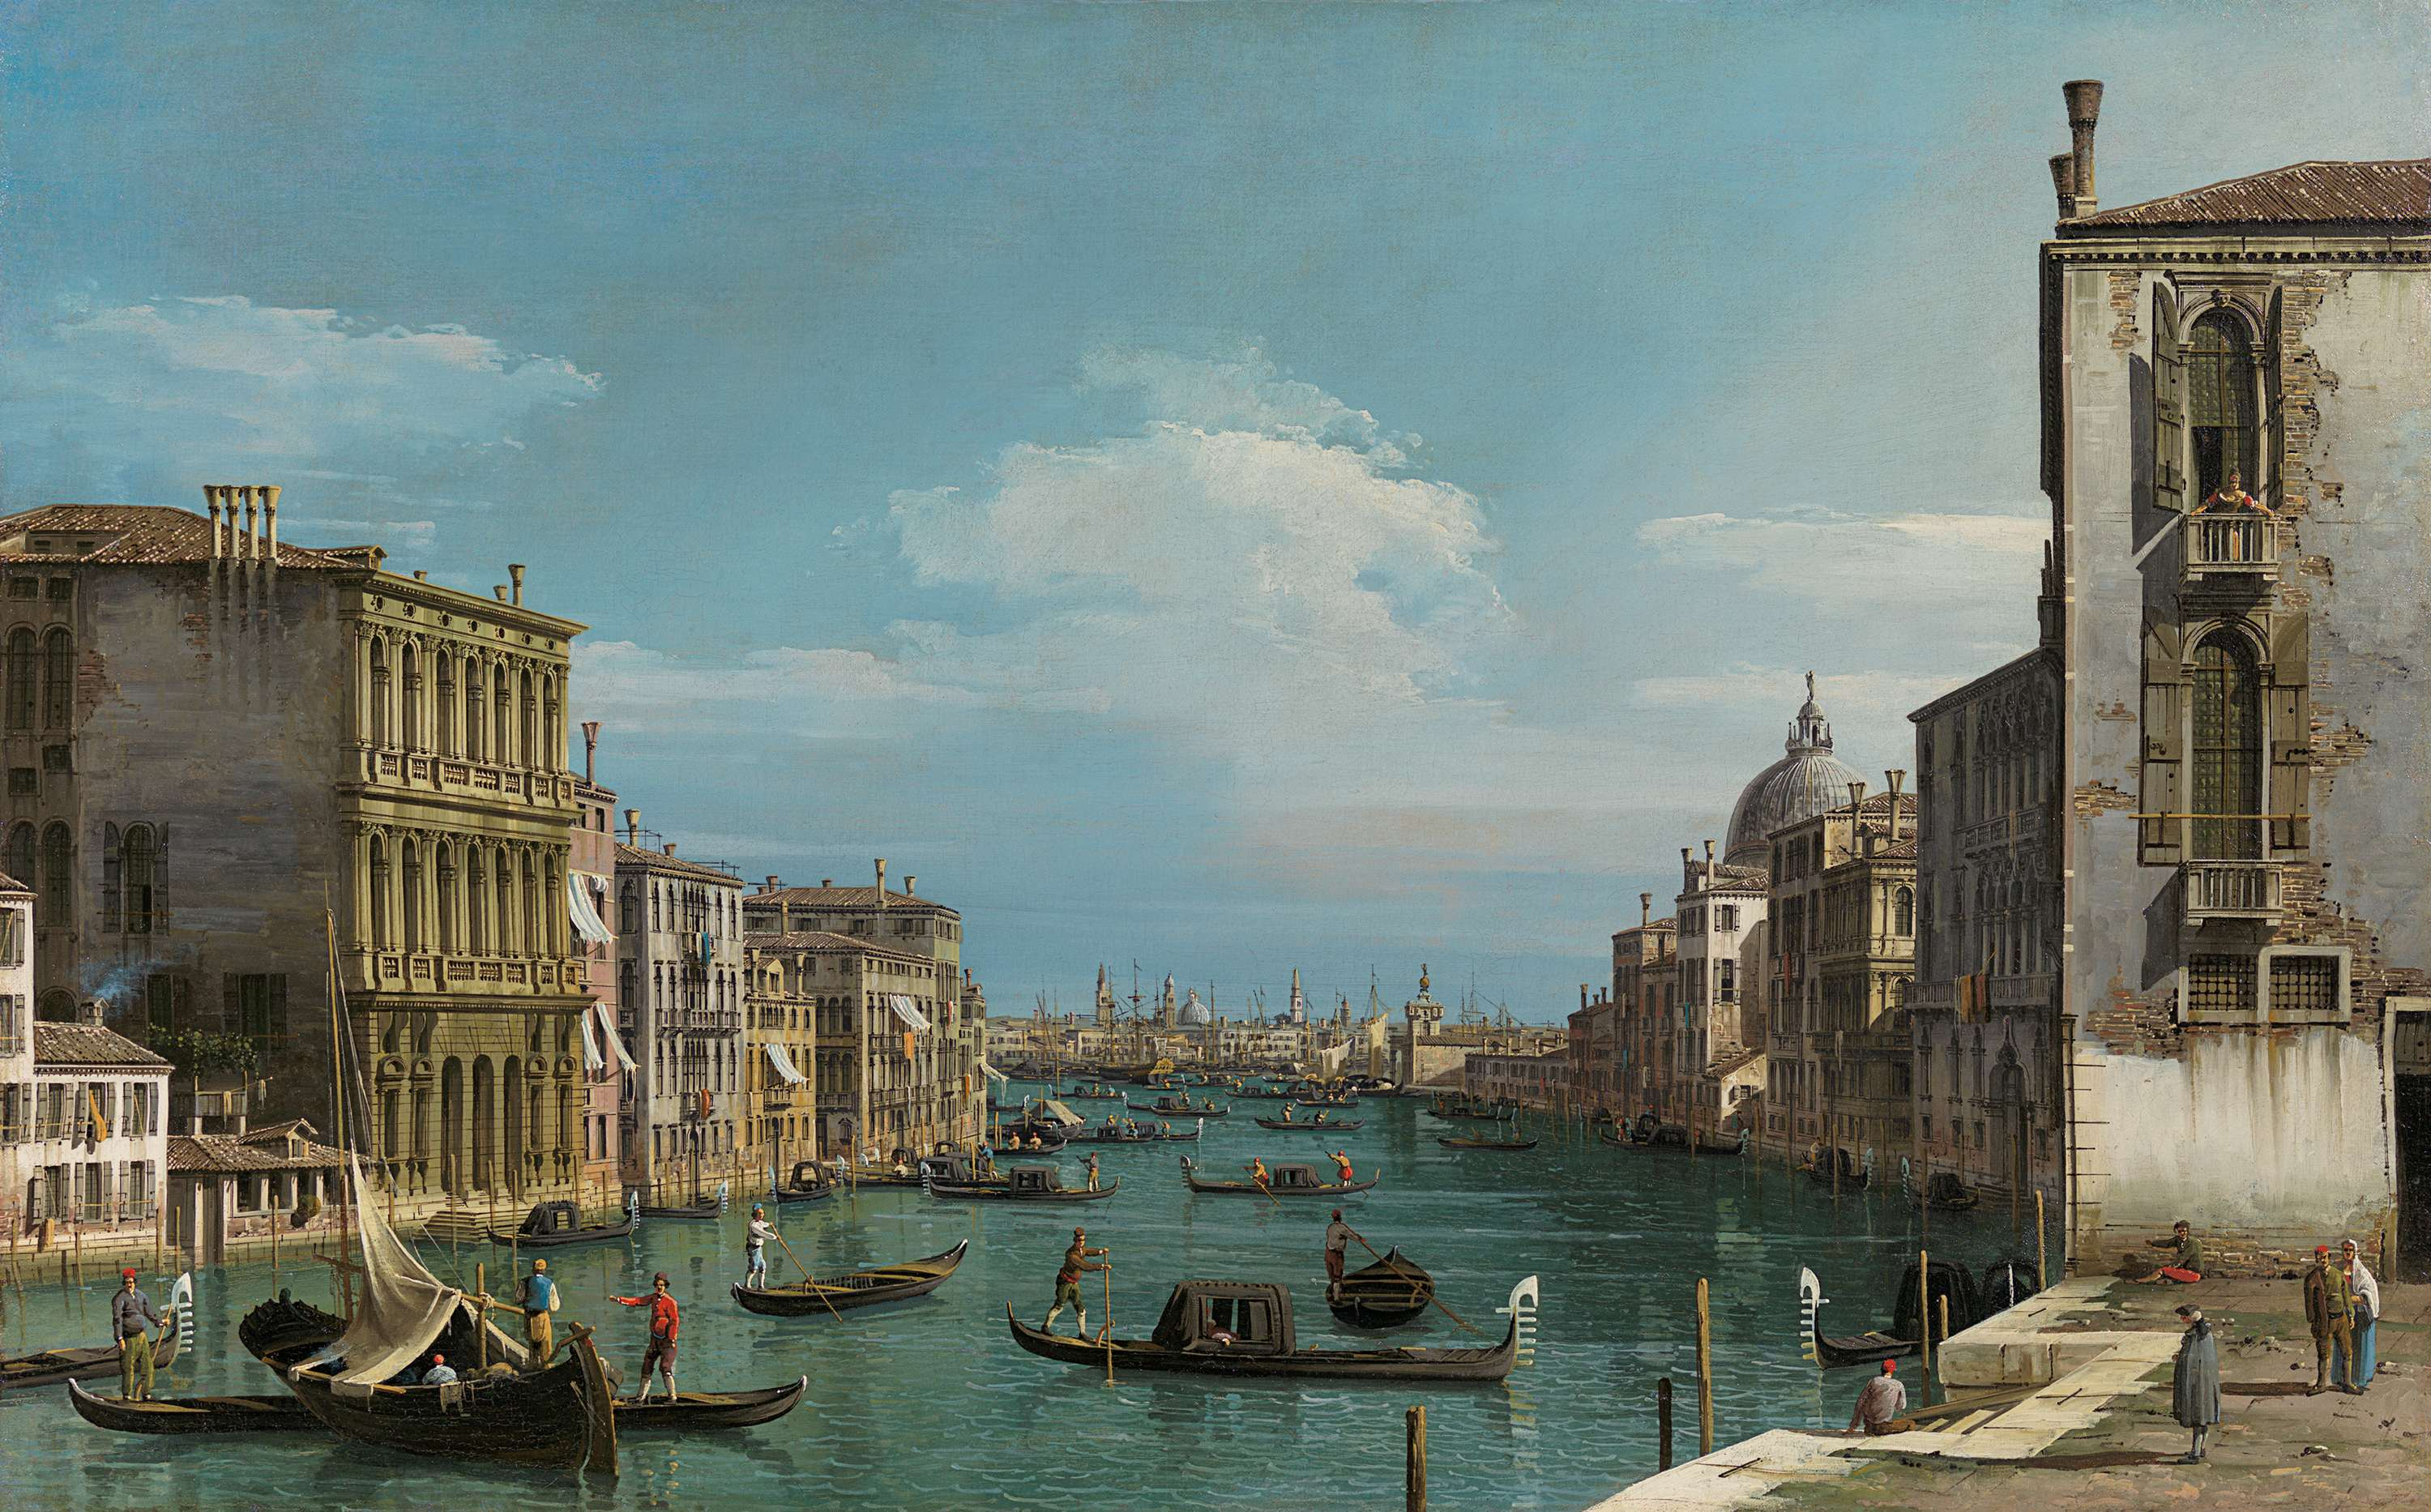 Bernardo Bellotto, Venice, a view of the Grand Canal looking east from the Palazzo Loredan Cini on the Campo San Vio, ca. 1741